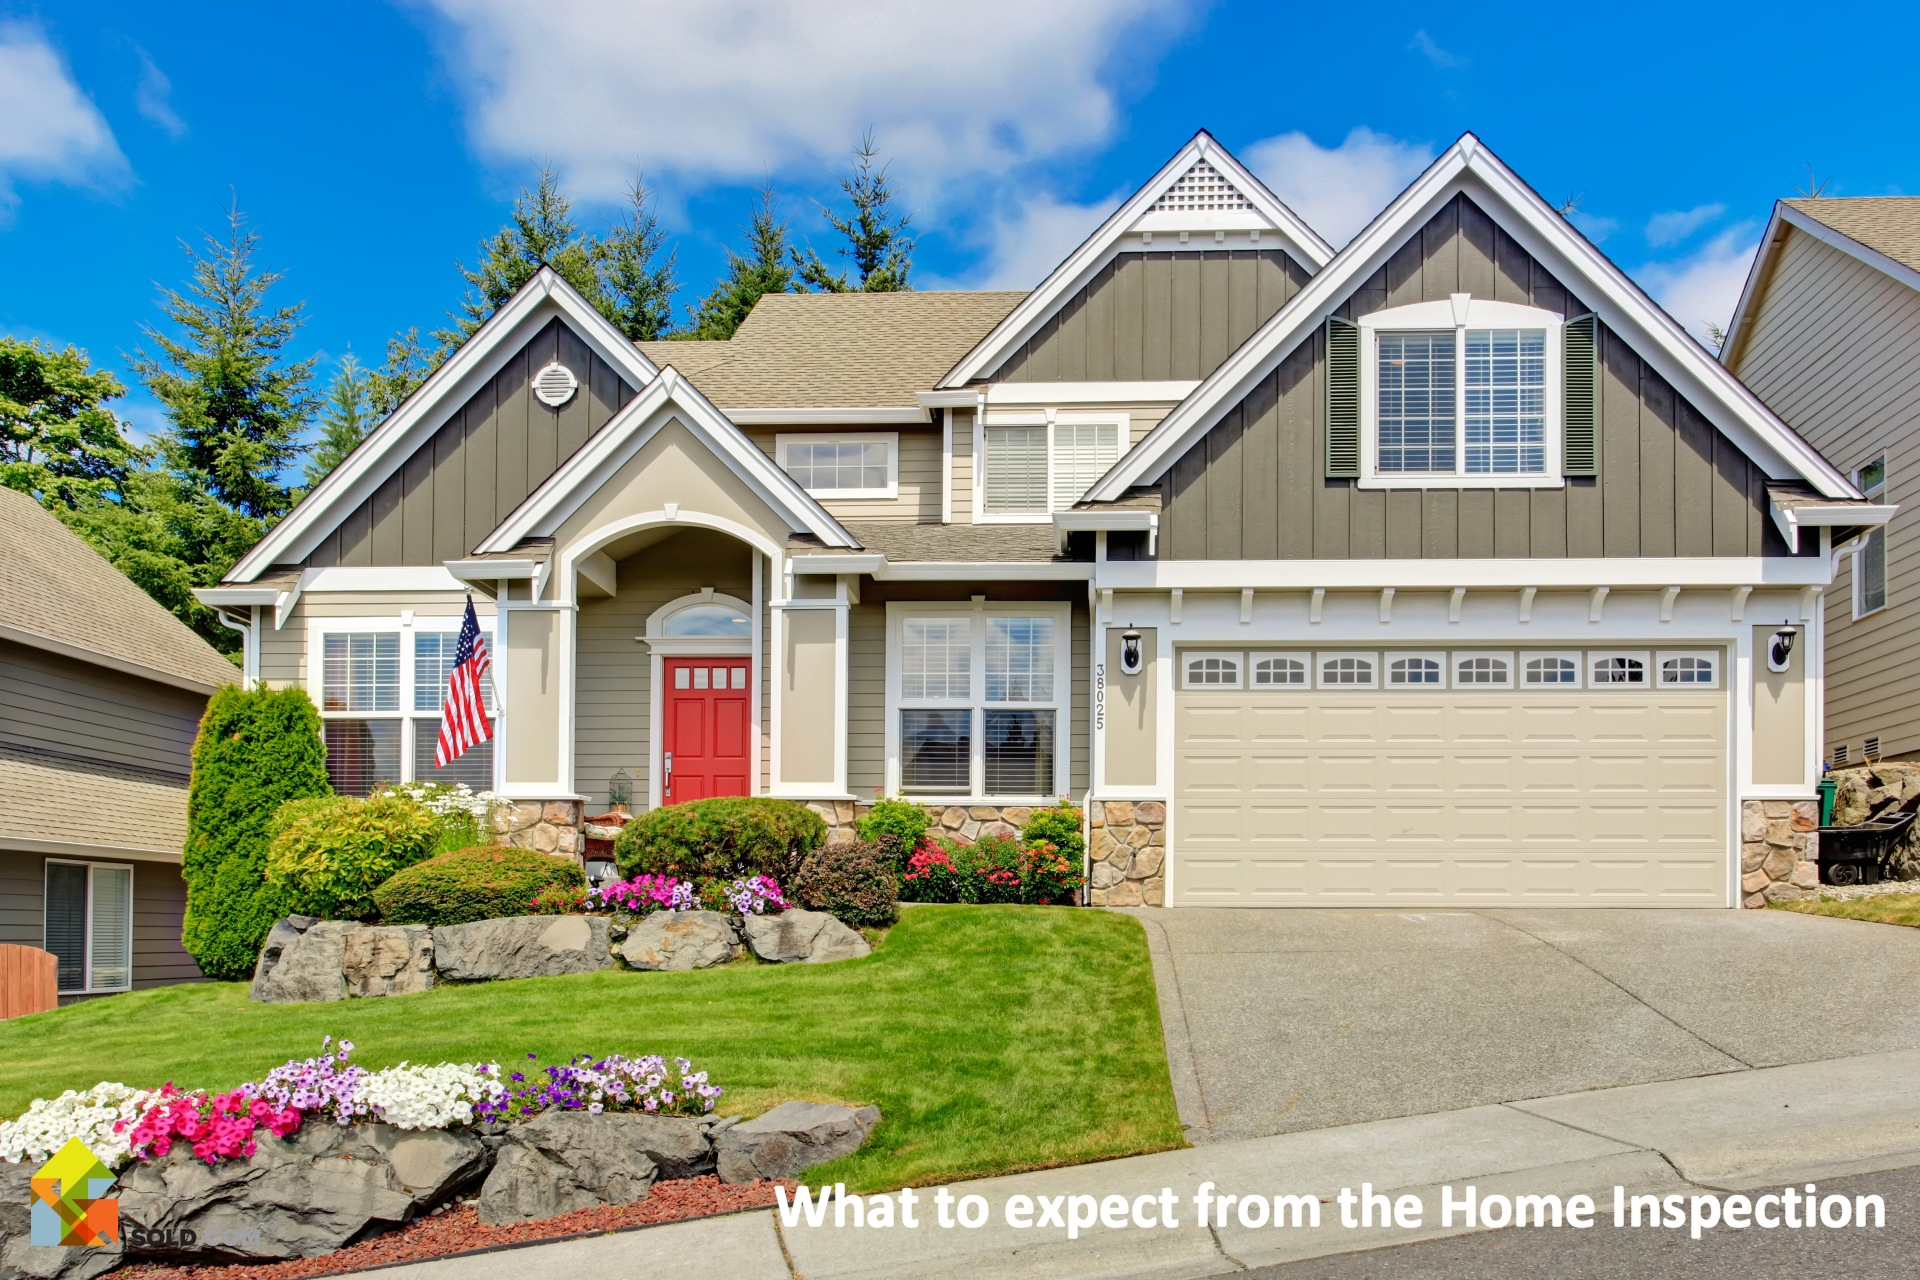 What Sellers Should Expect from the Home Inspection